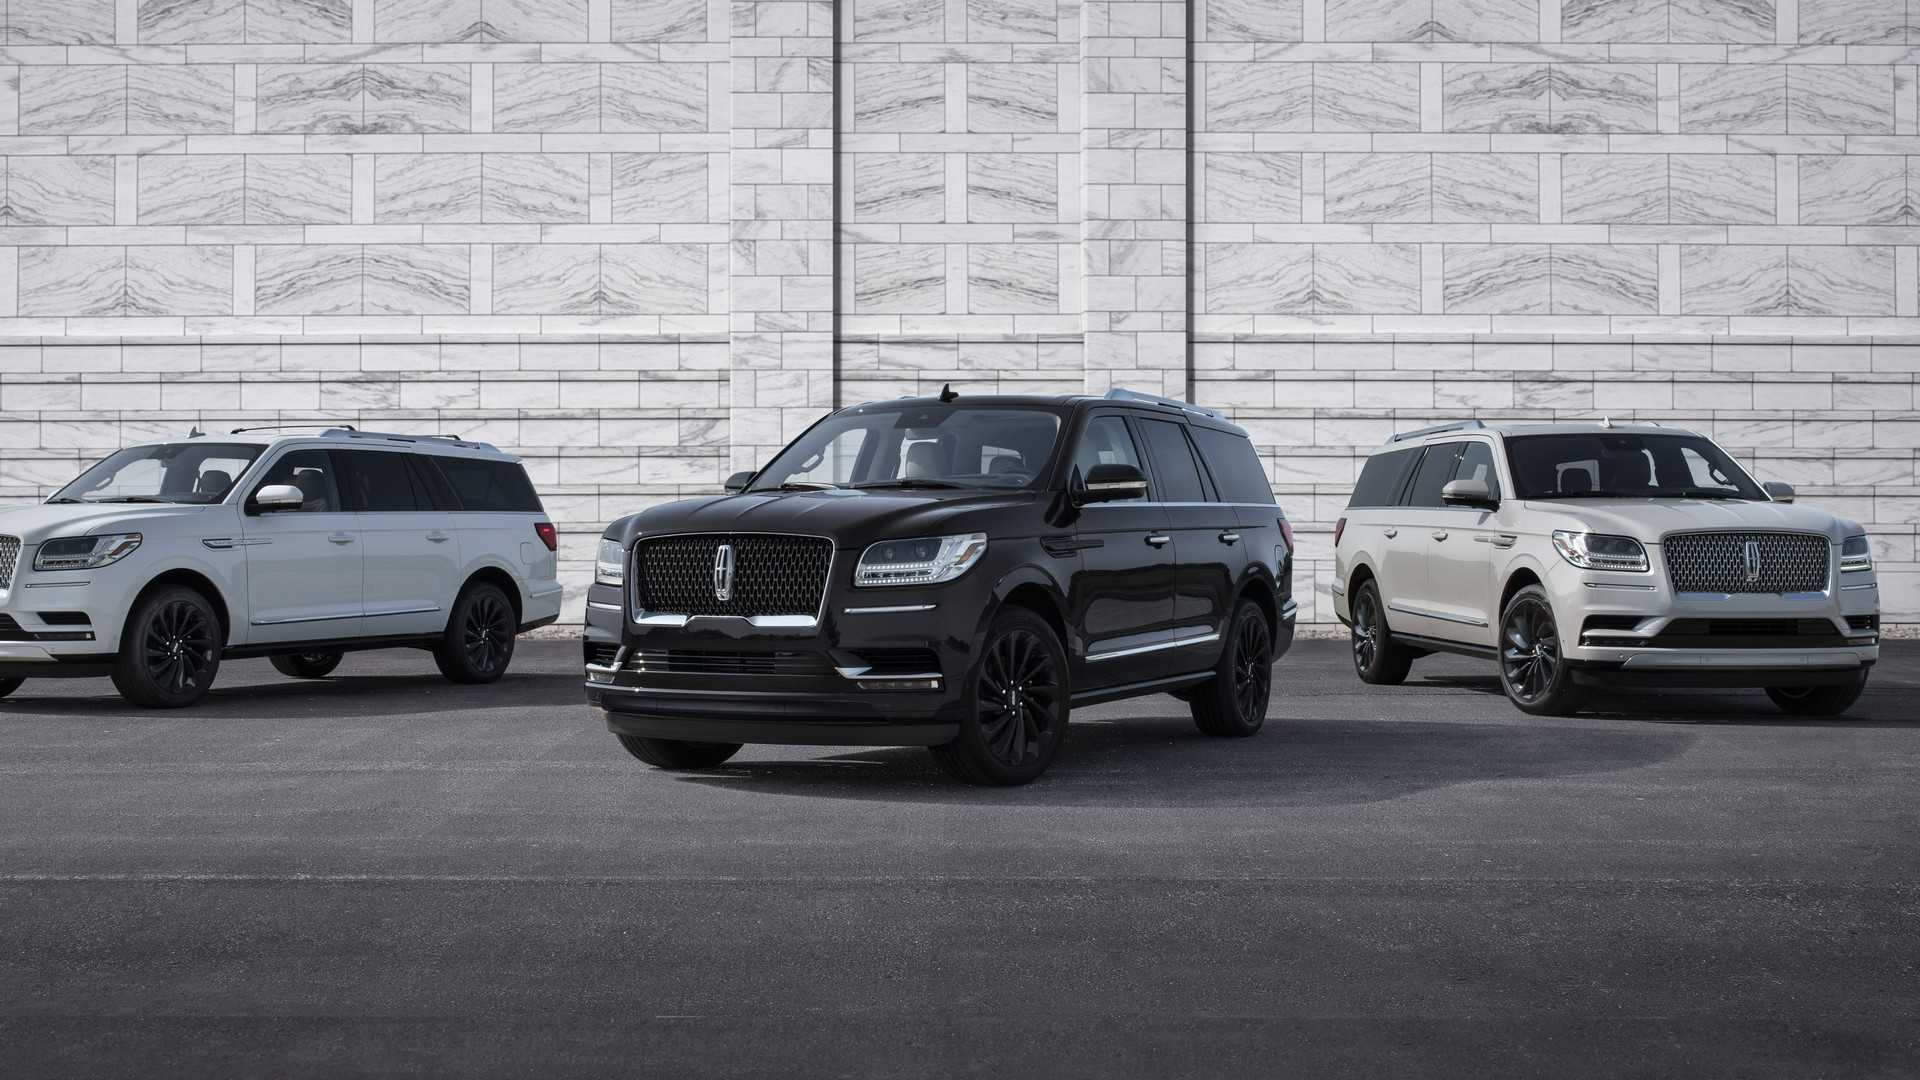 Lincoln Motor Company has taken the wraps off the 2020 Lincoln Navigator SUV. The facelift brings along extended standard equipment and three Monochromatic styling packages.